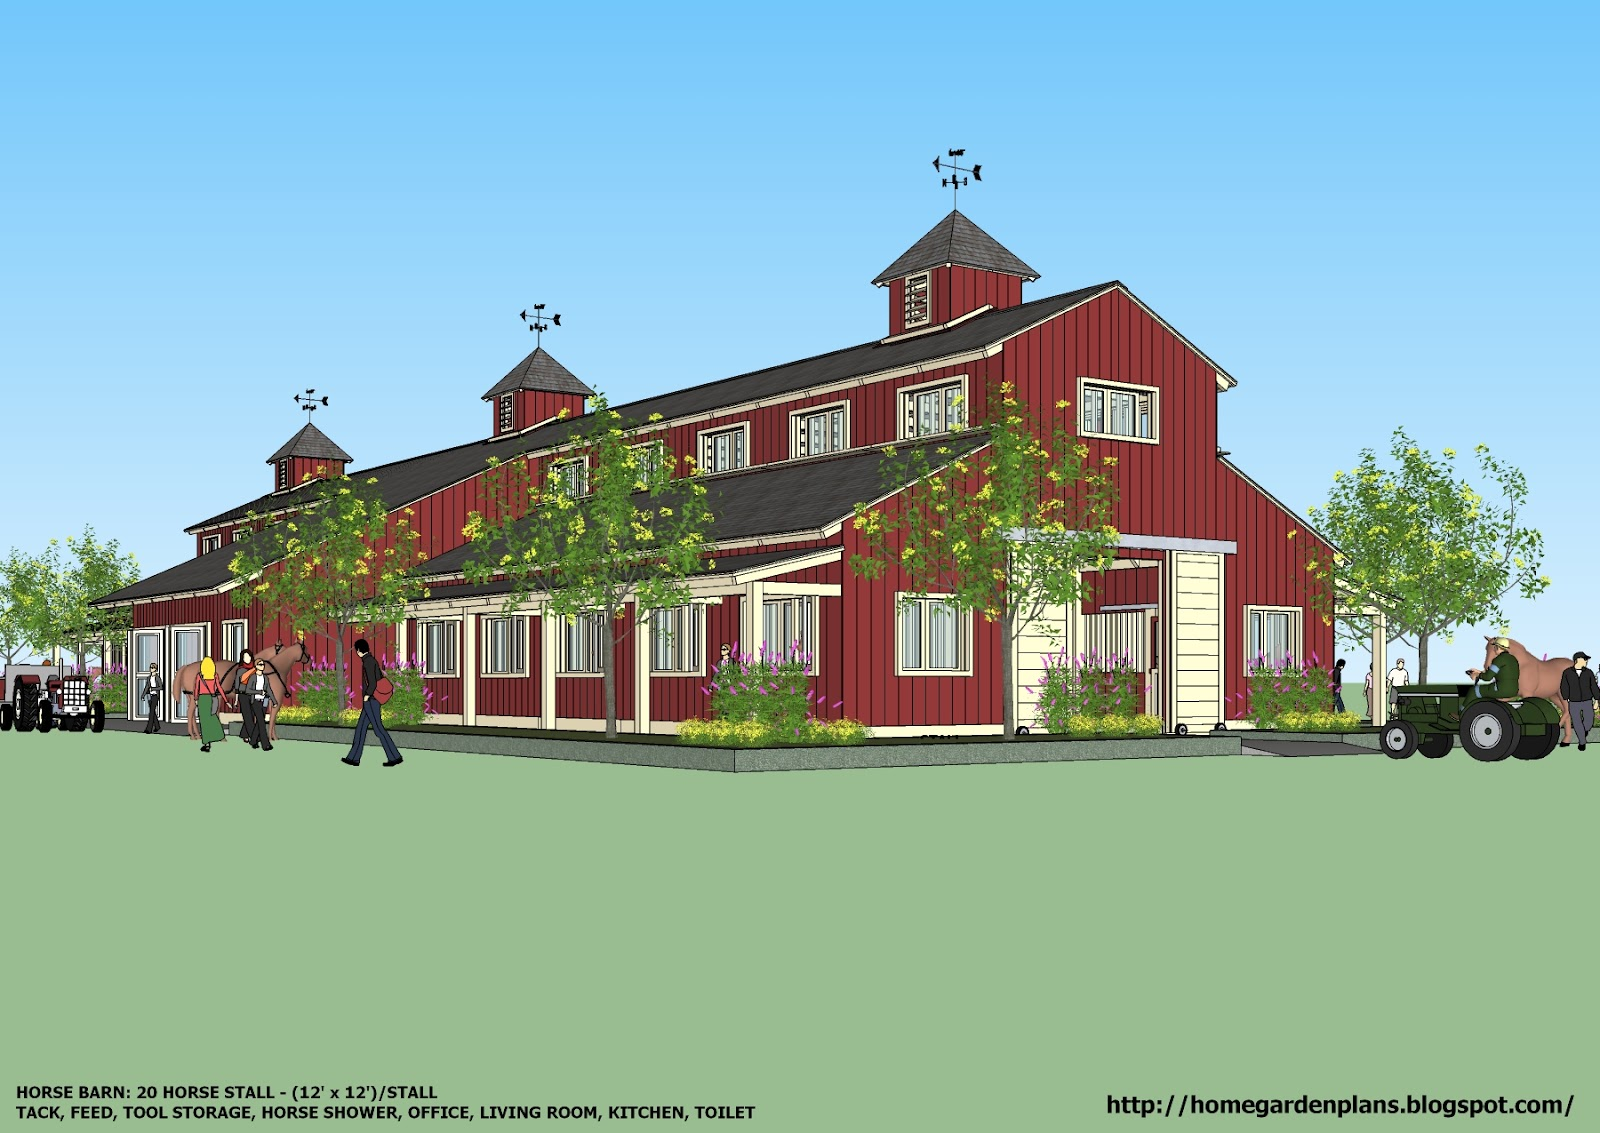 Home garden plans horse barns for Barn designs